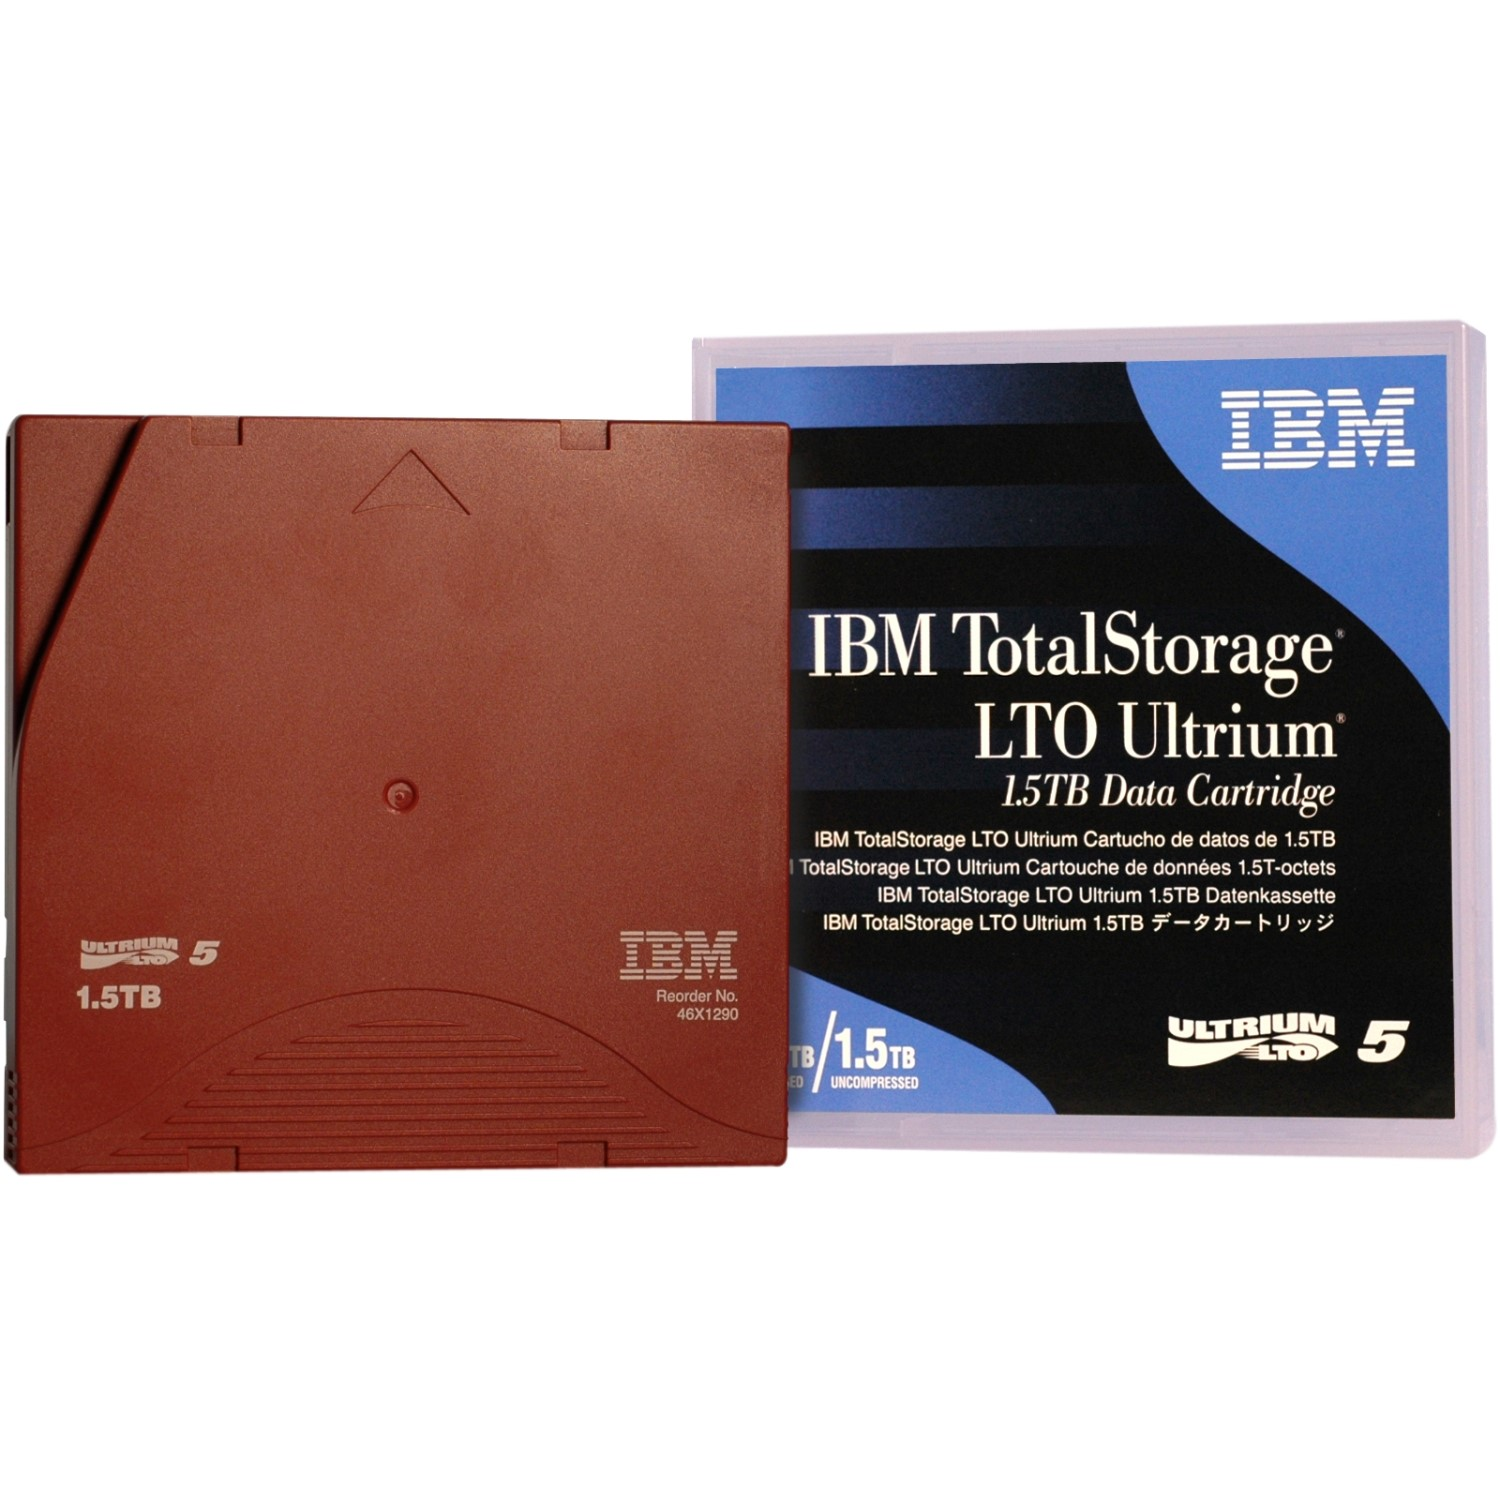 46X1290 IBM Storage media LTO Ultrium 1.5 TB